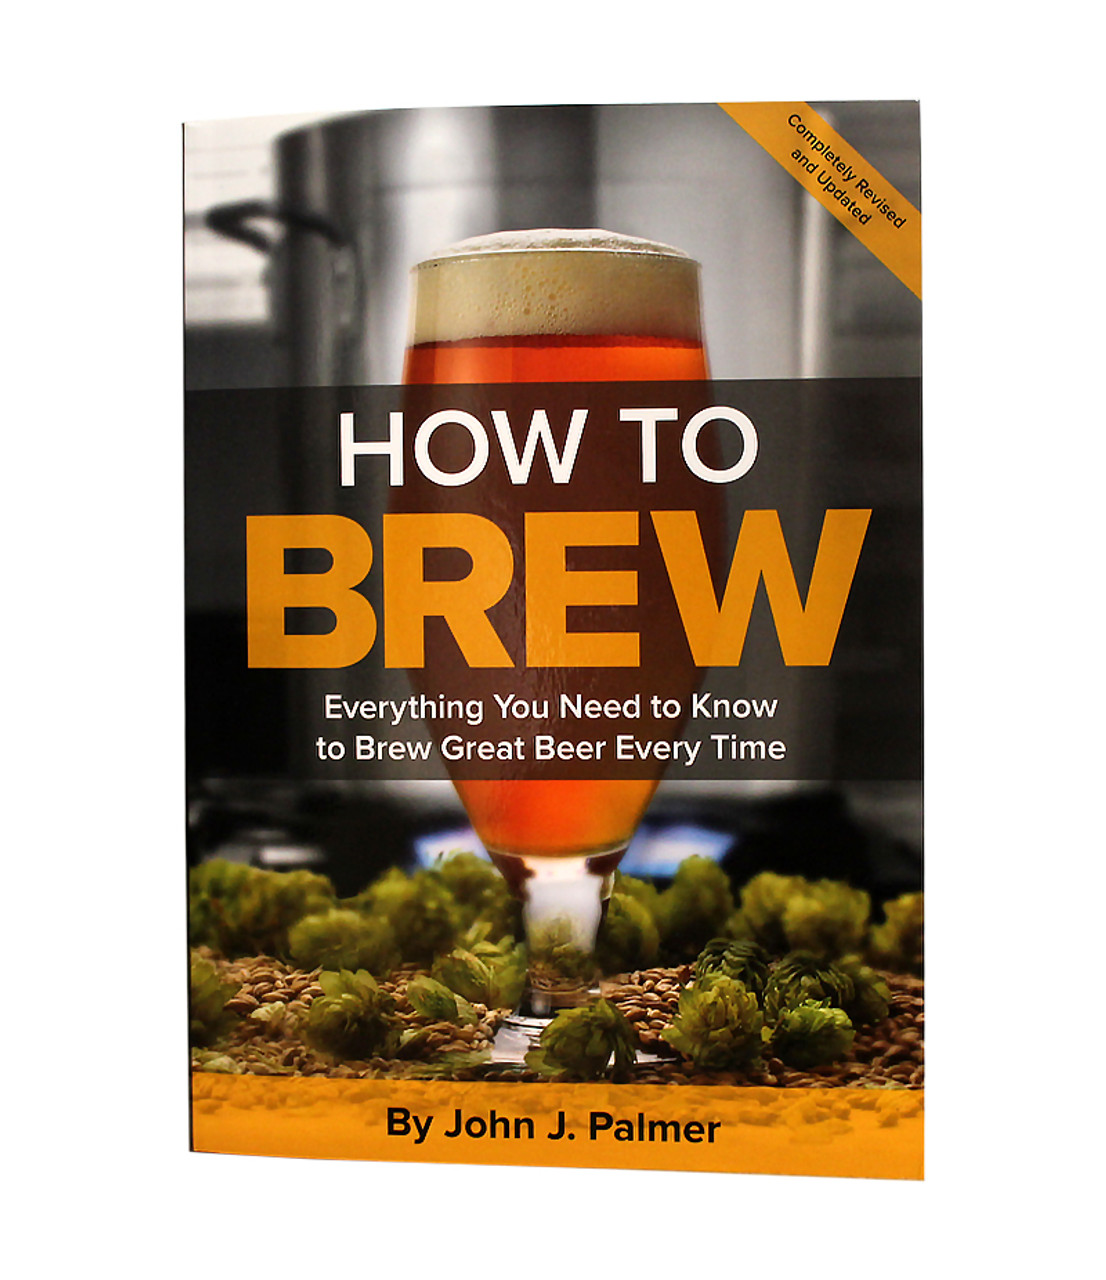 How To Brew (Palmer)